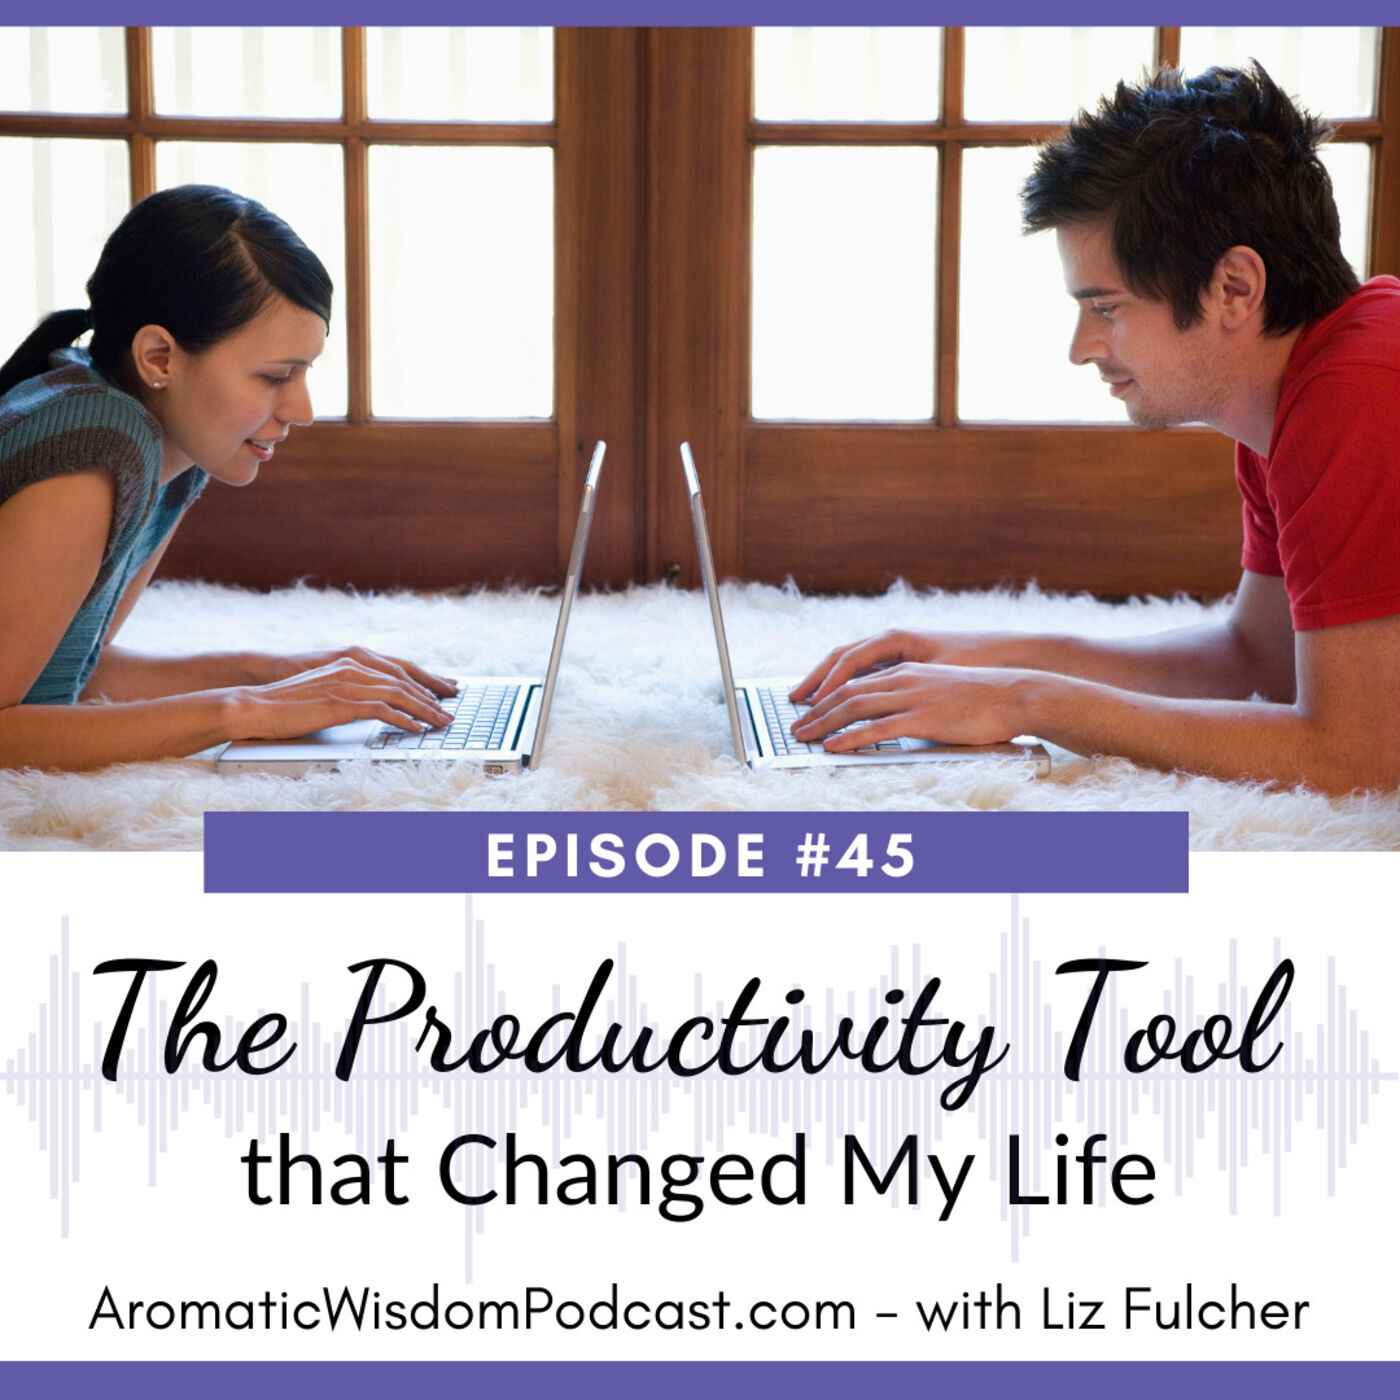 AWP 045: The Productivity Tool that Changed My Life